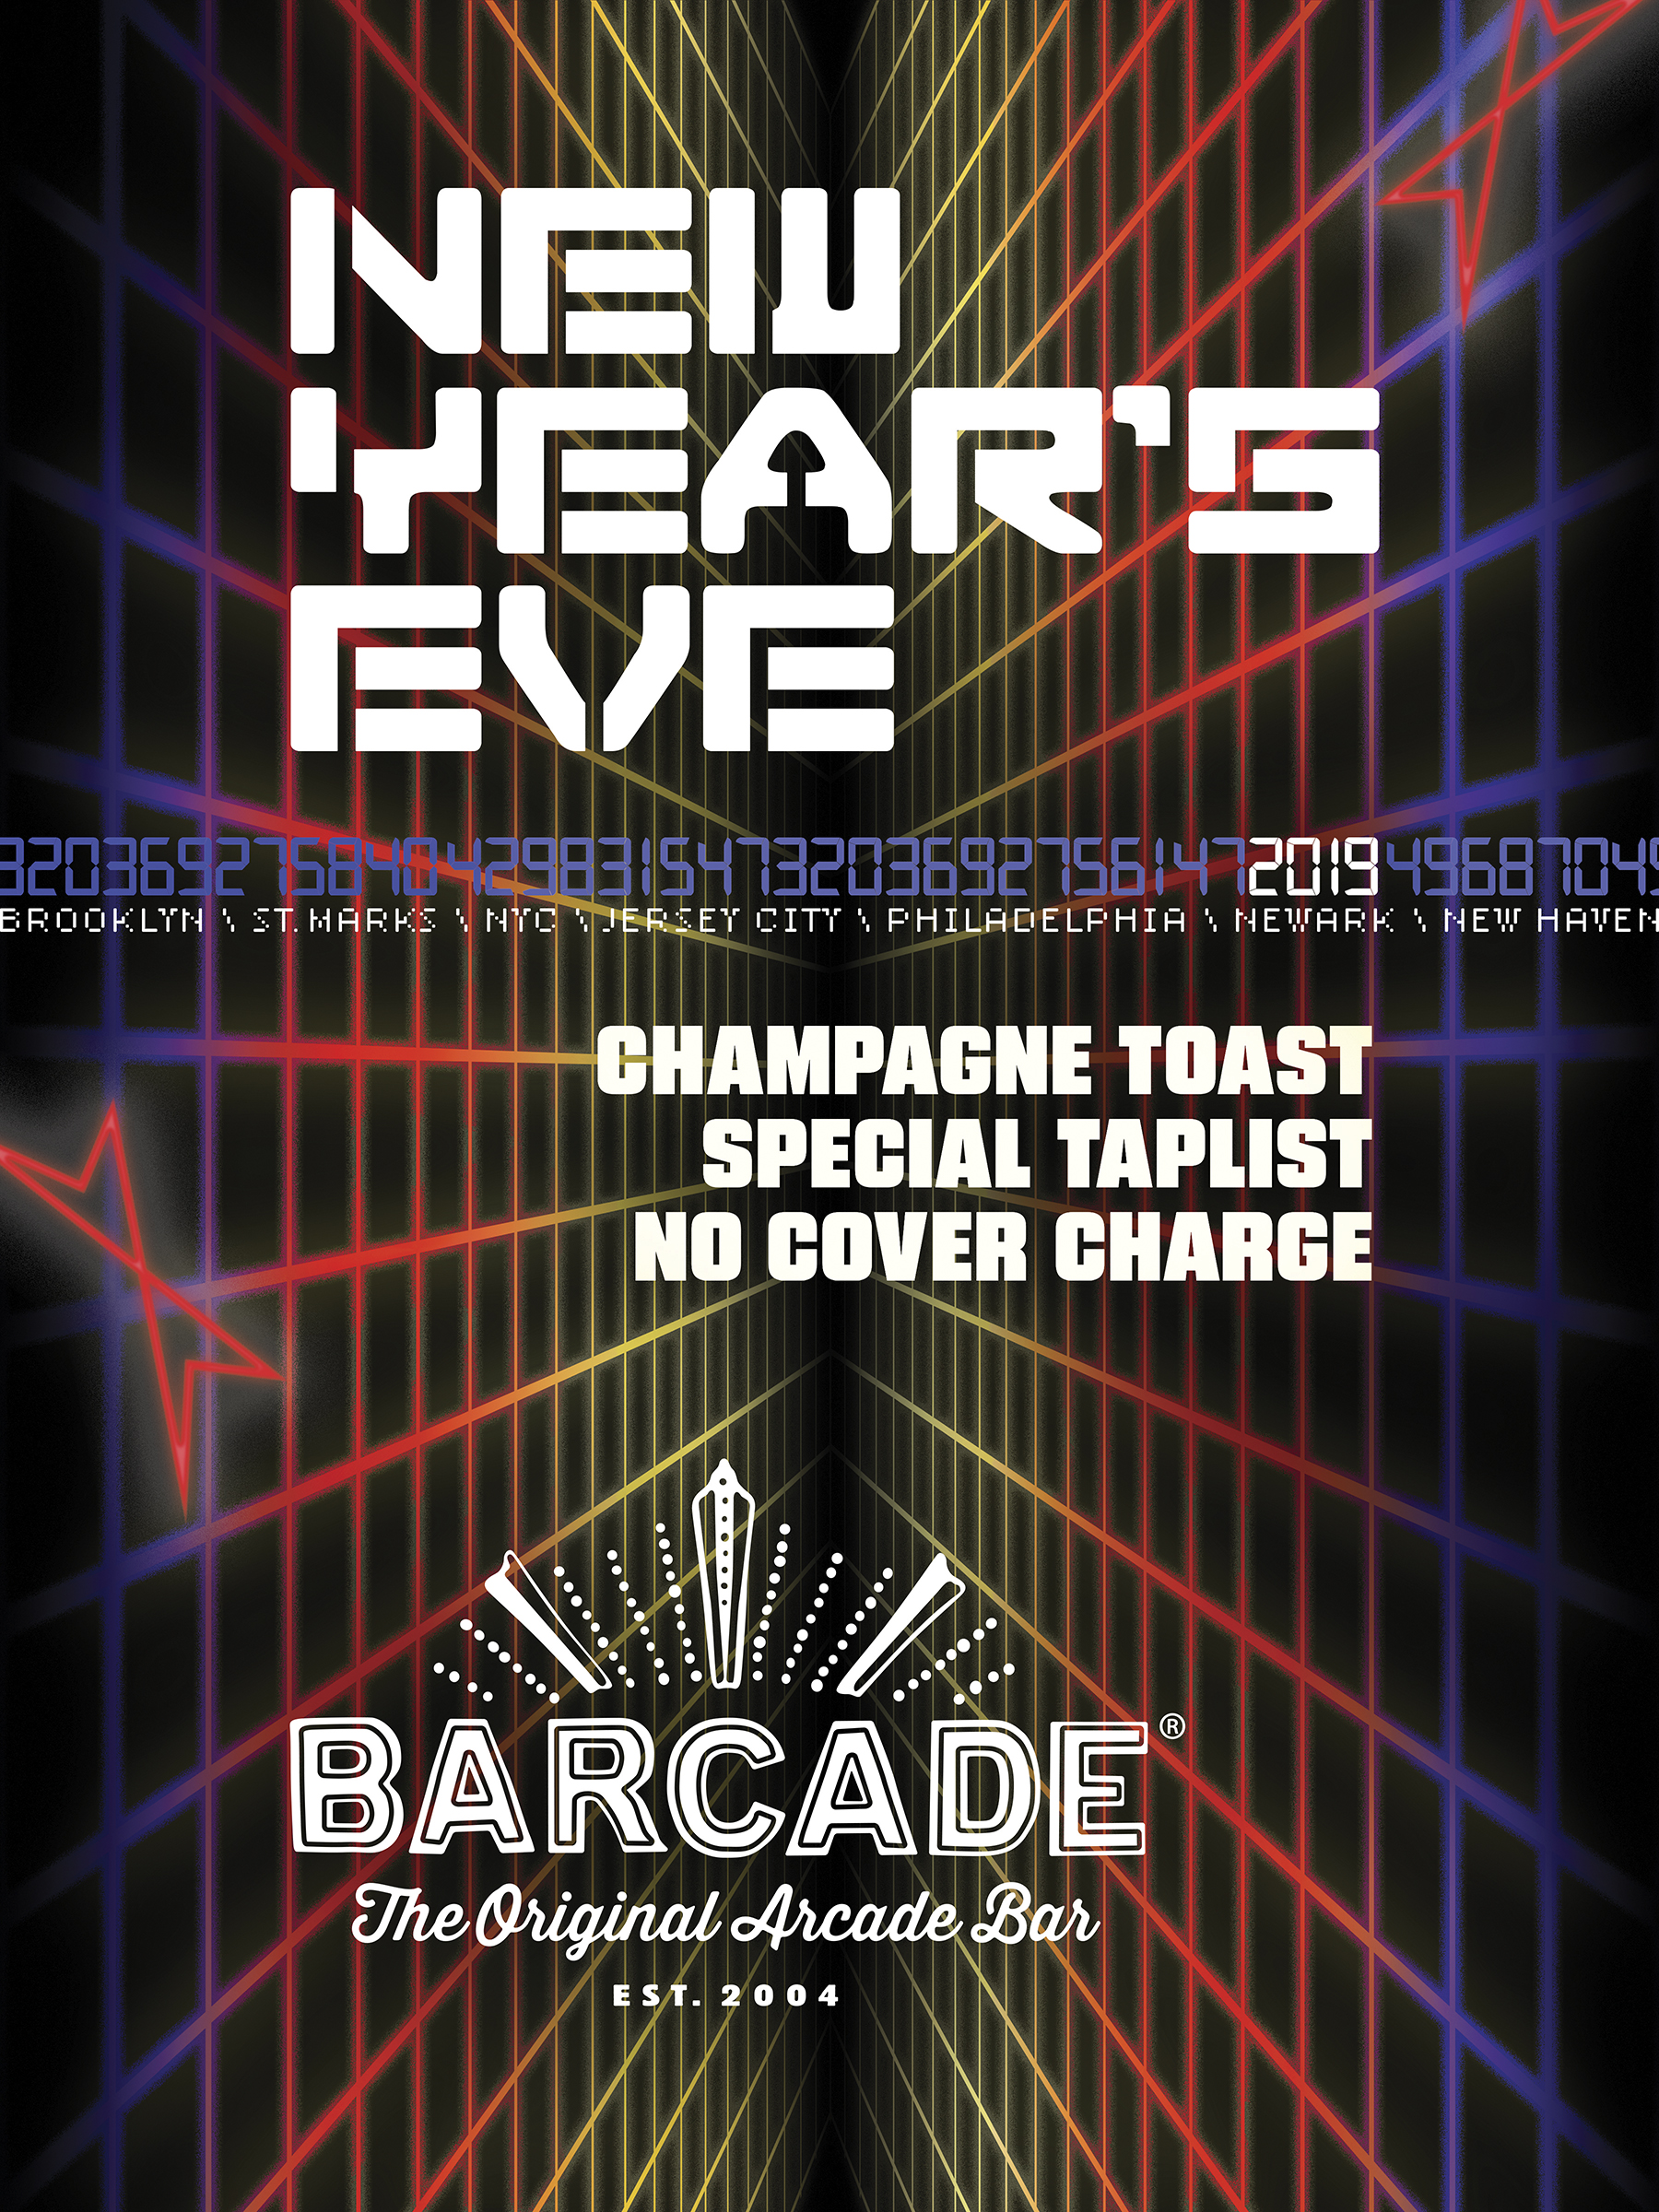 New Year's Eve Party—Monday, December 31st at Barcade in Newark, New Jersey